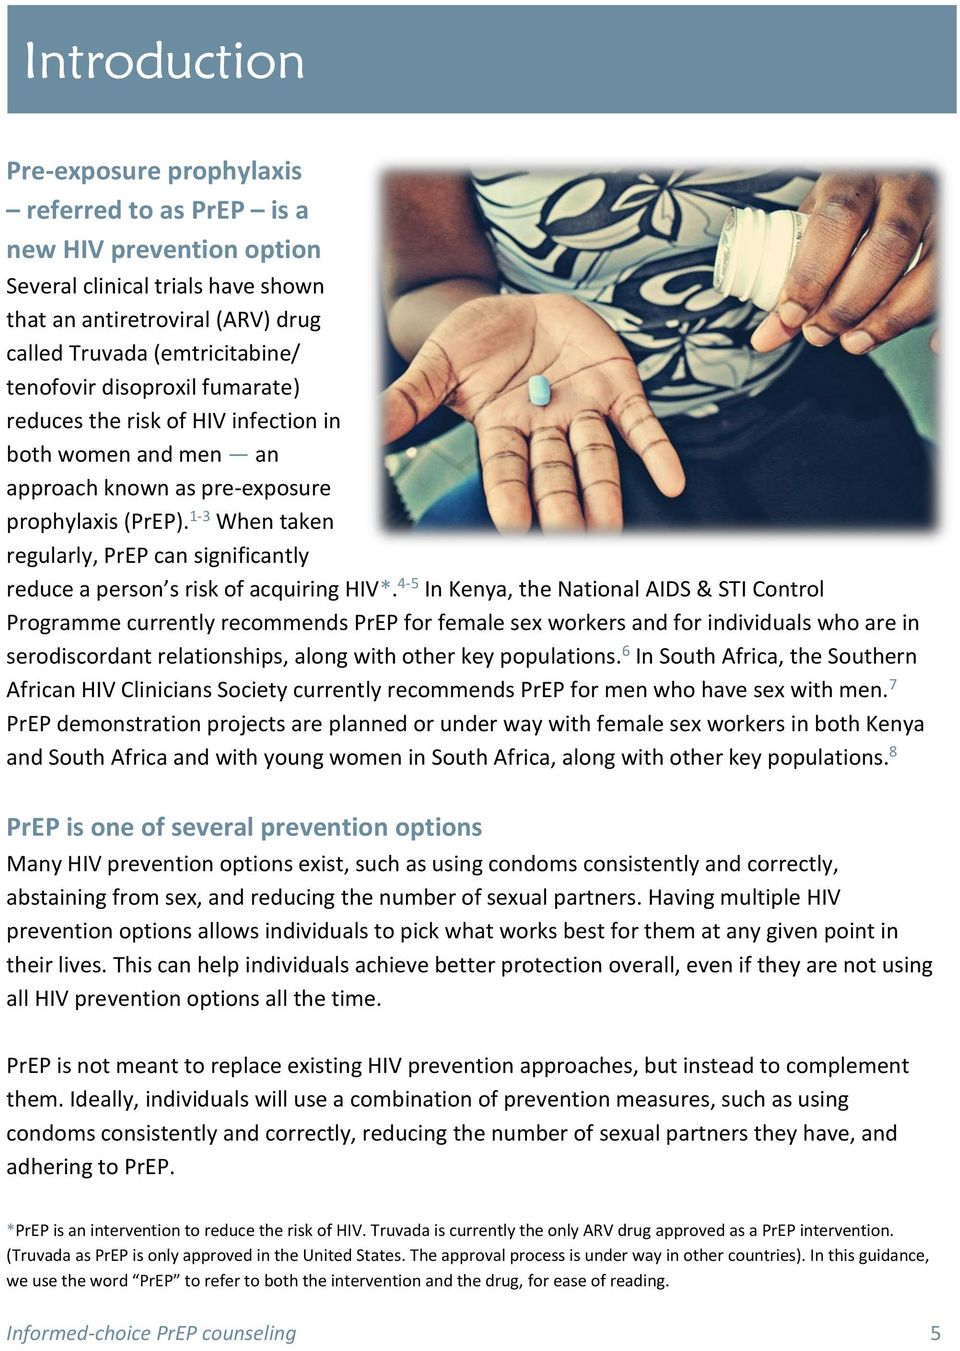 1-3 When taken regularly, PrEP can significantly reduce a person s risk of acquiring HIV*.